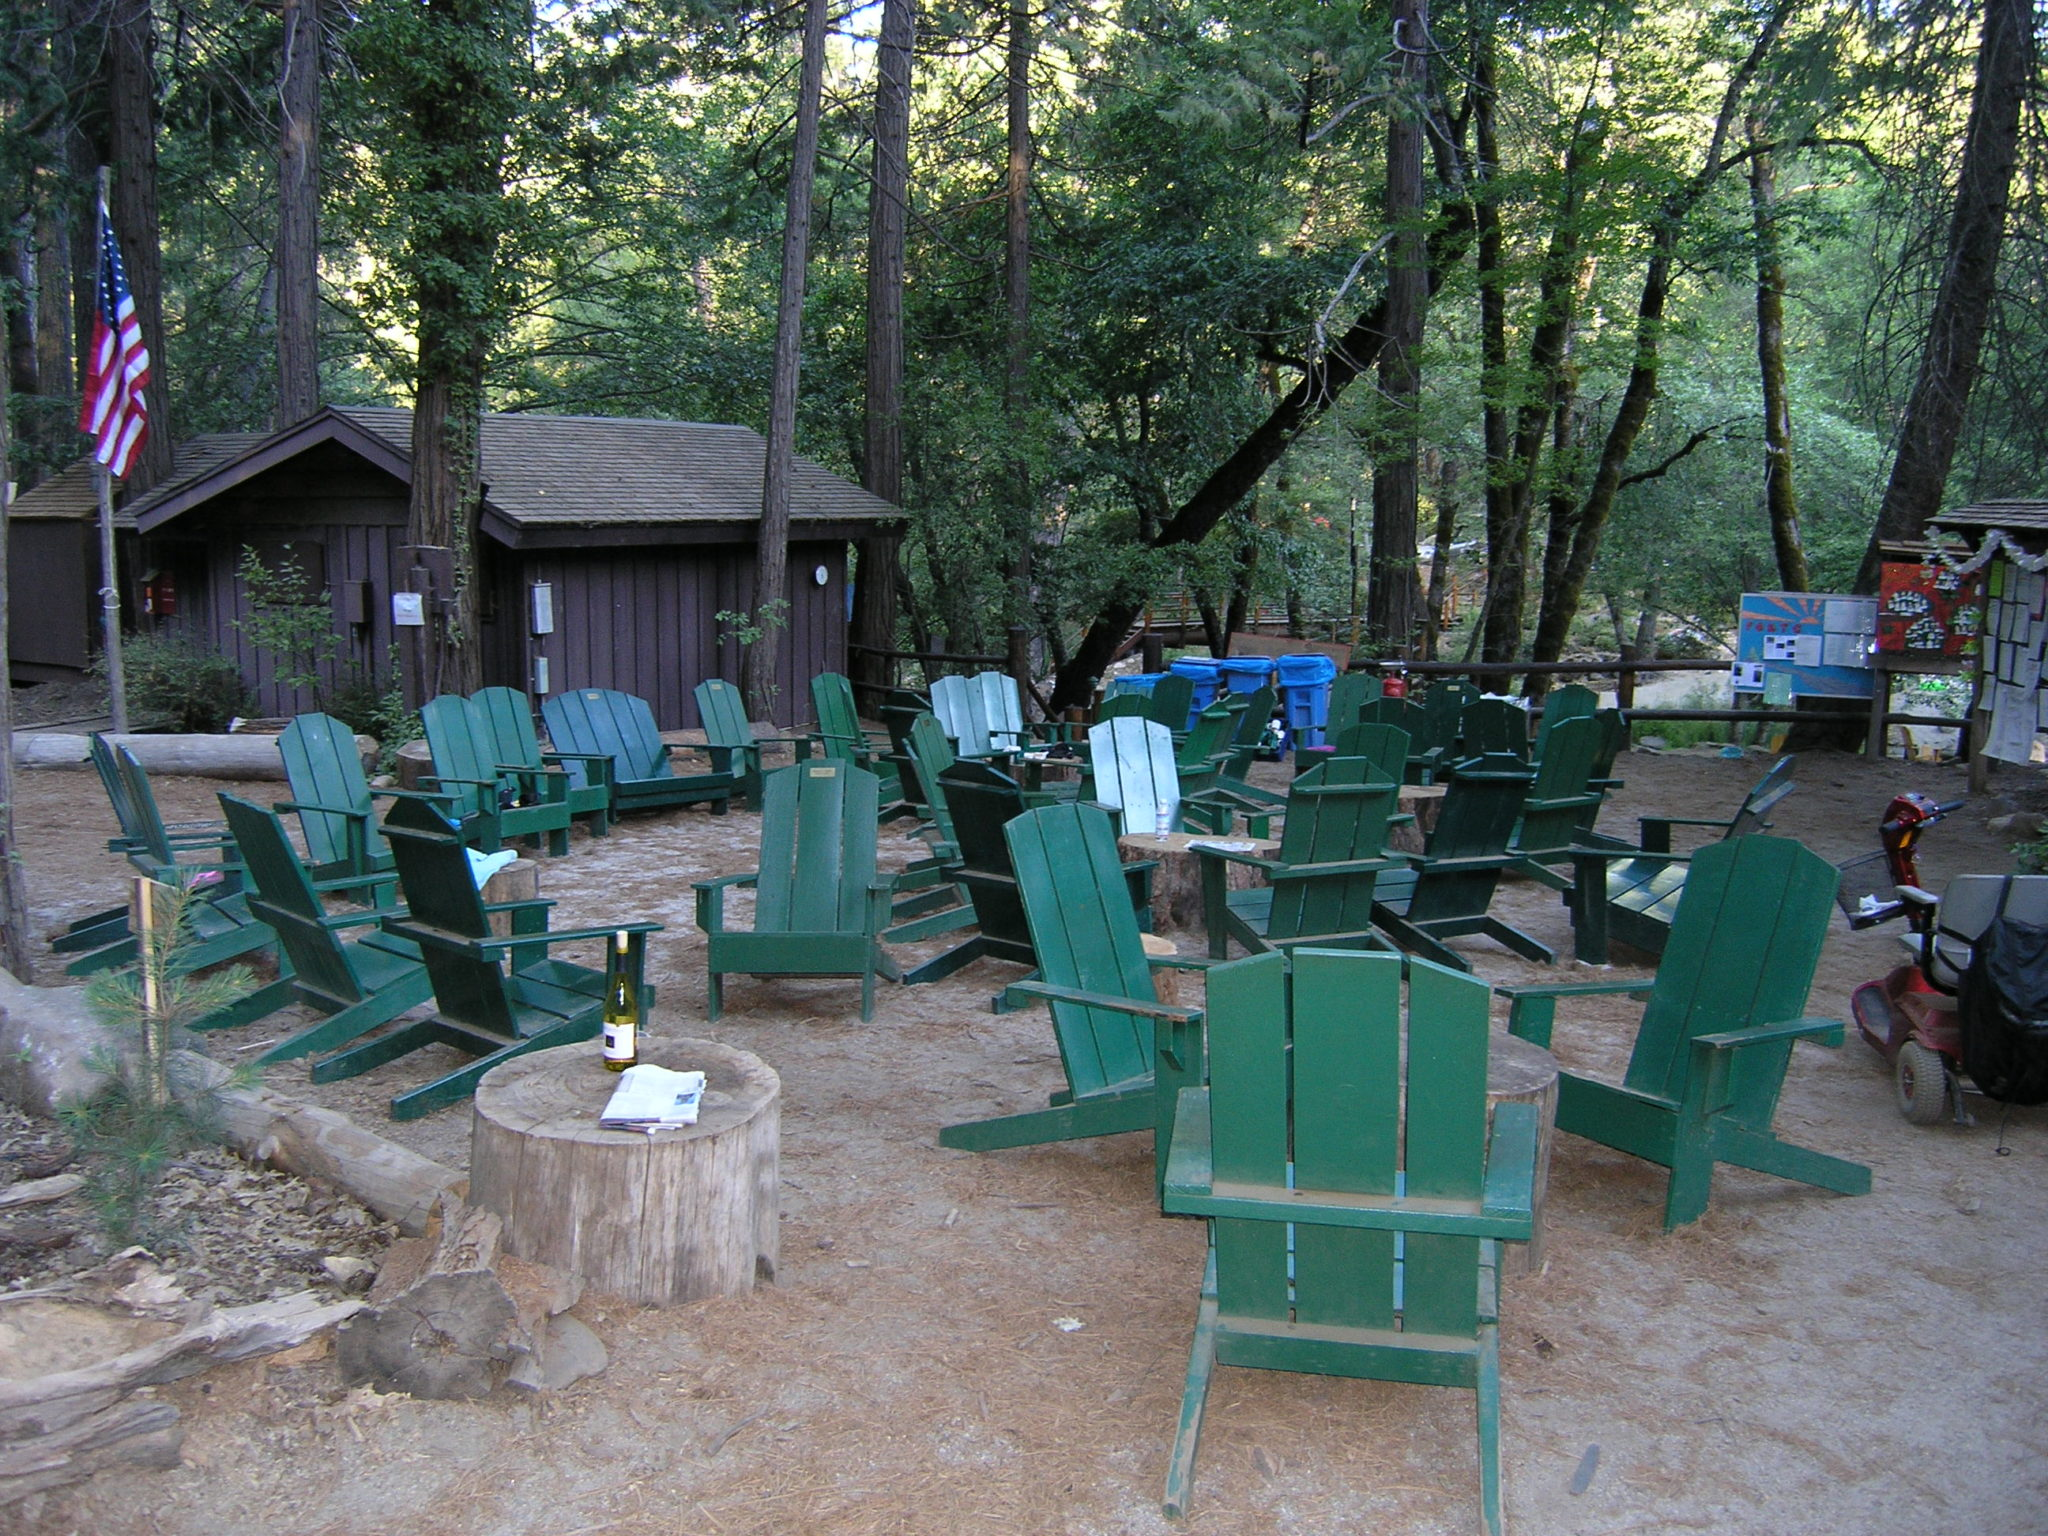 Green adirondack chairs at camp